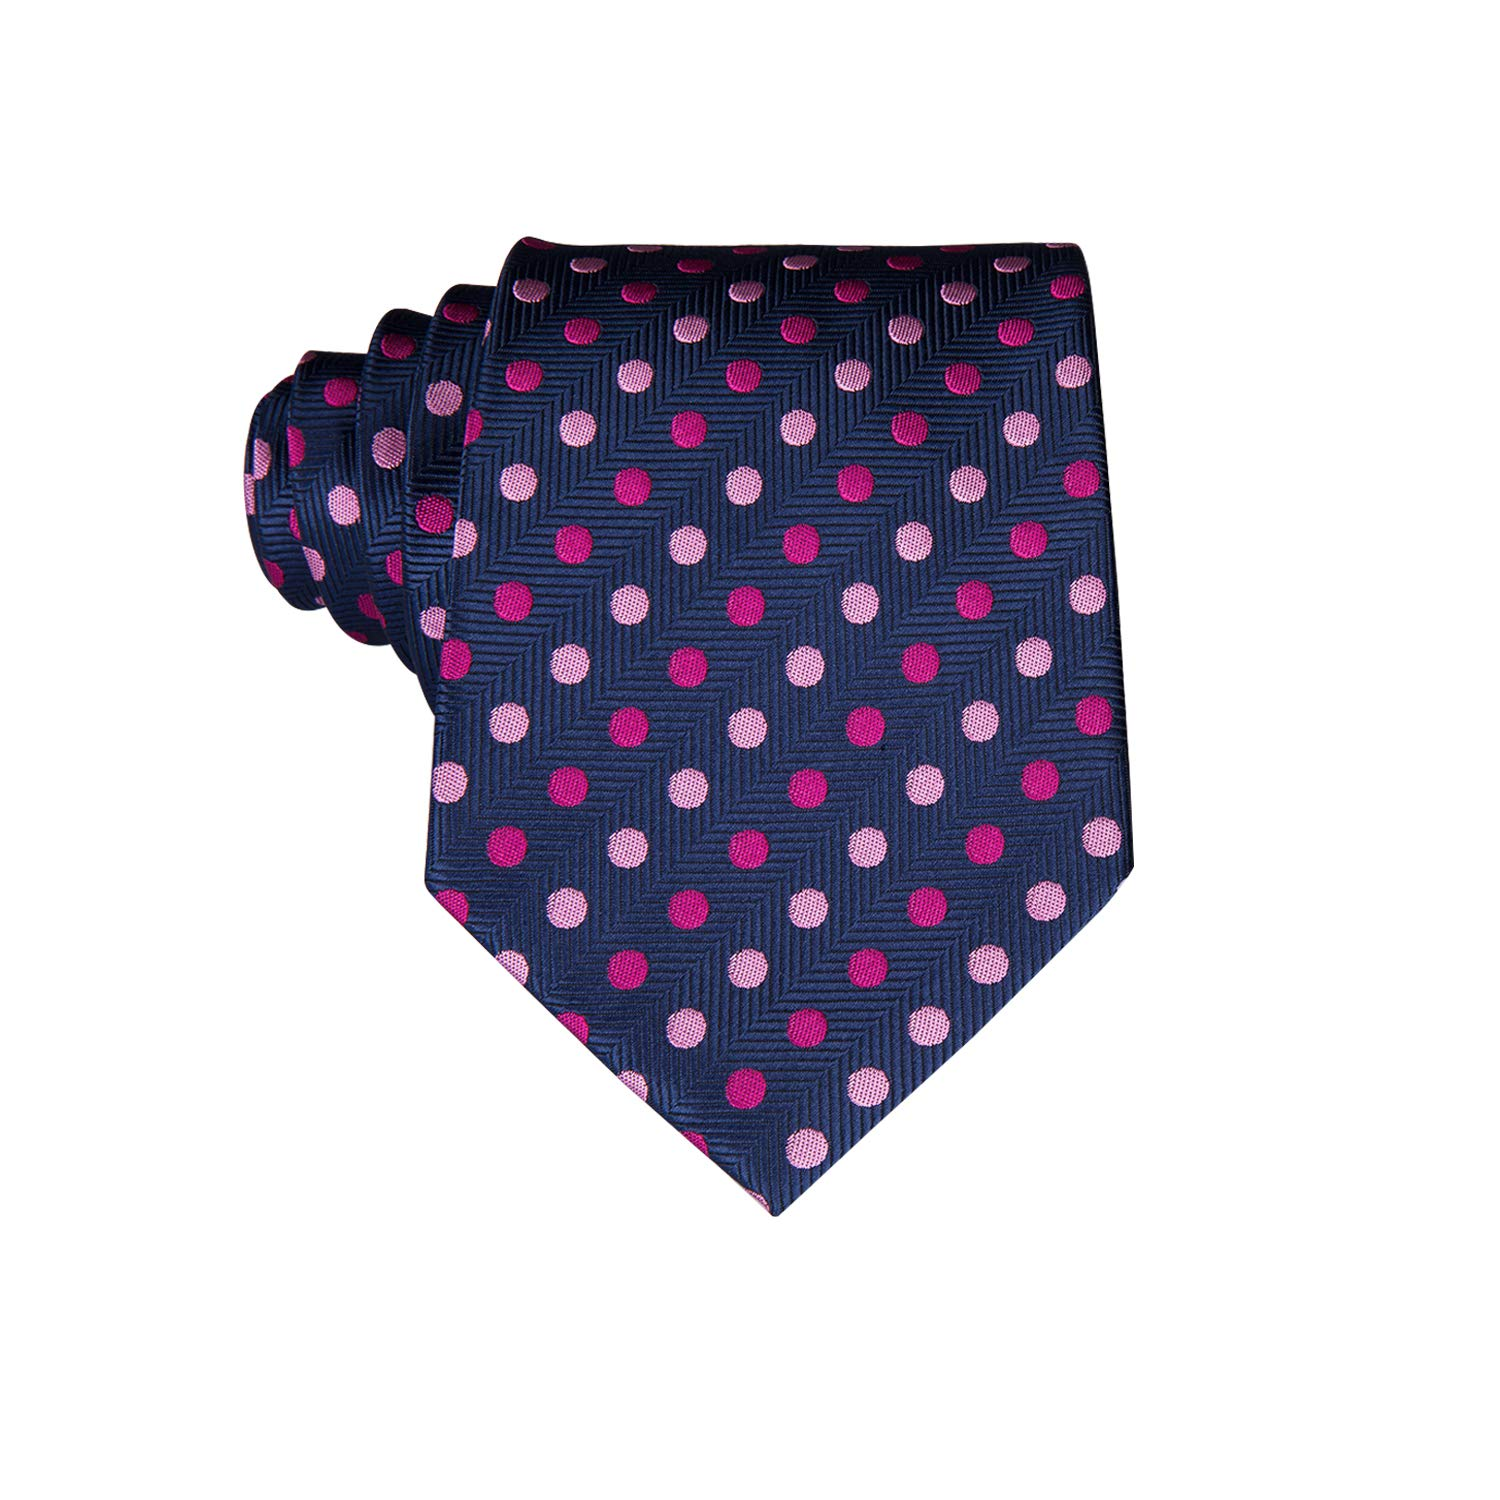 Dubulle Tie for Boys Self Tie Silk Kids Necktie and Pocket Square Set for Age 8-14